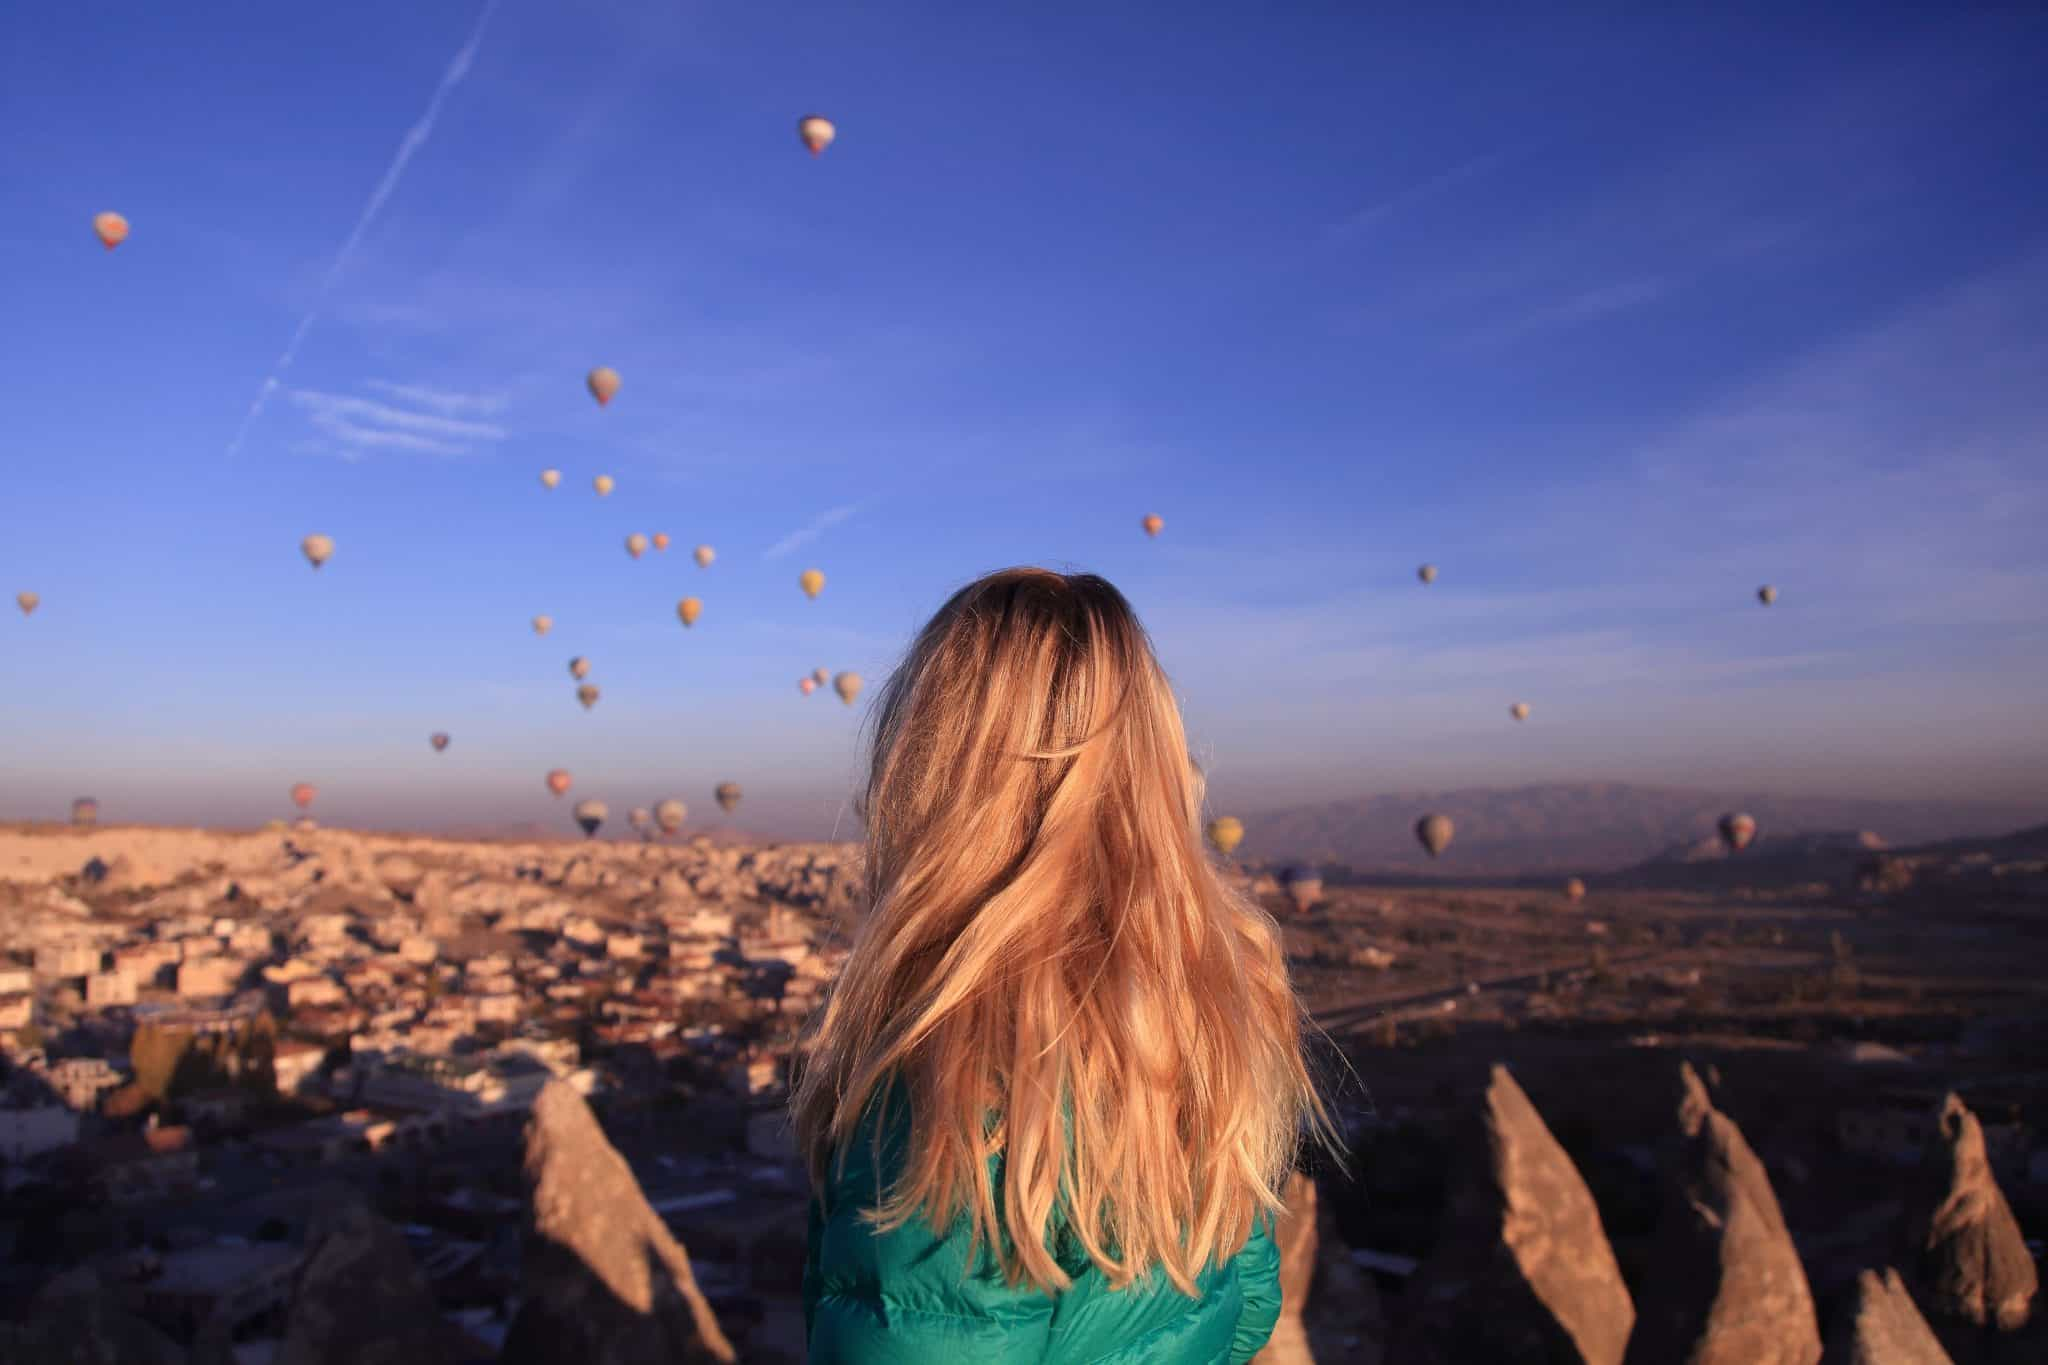 Cappadocia Pictures: Watching the balloons, Cappadocia on a budget